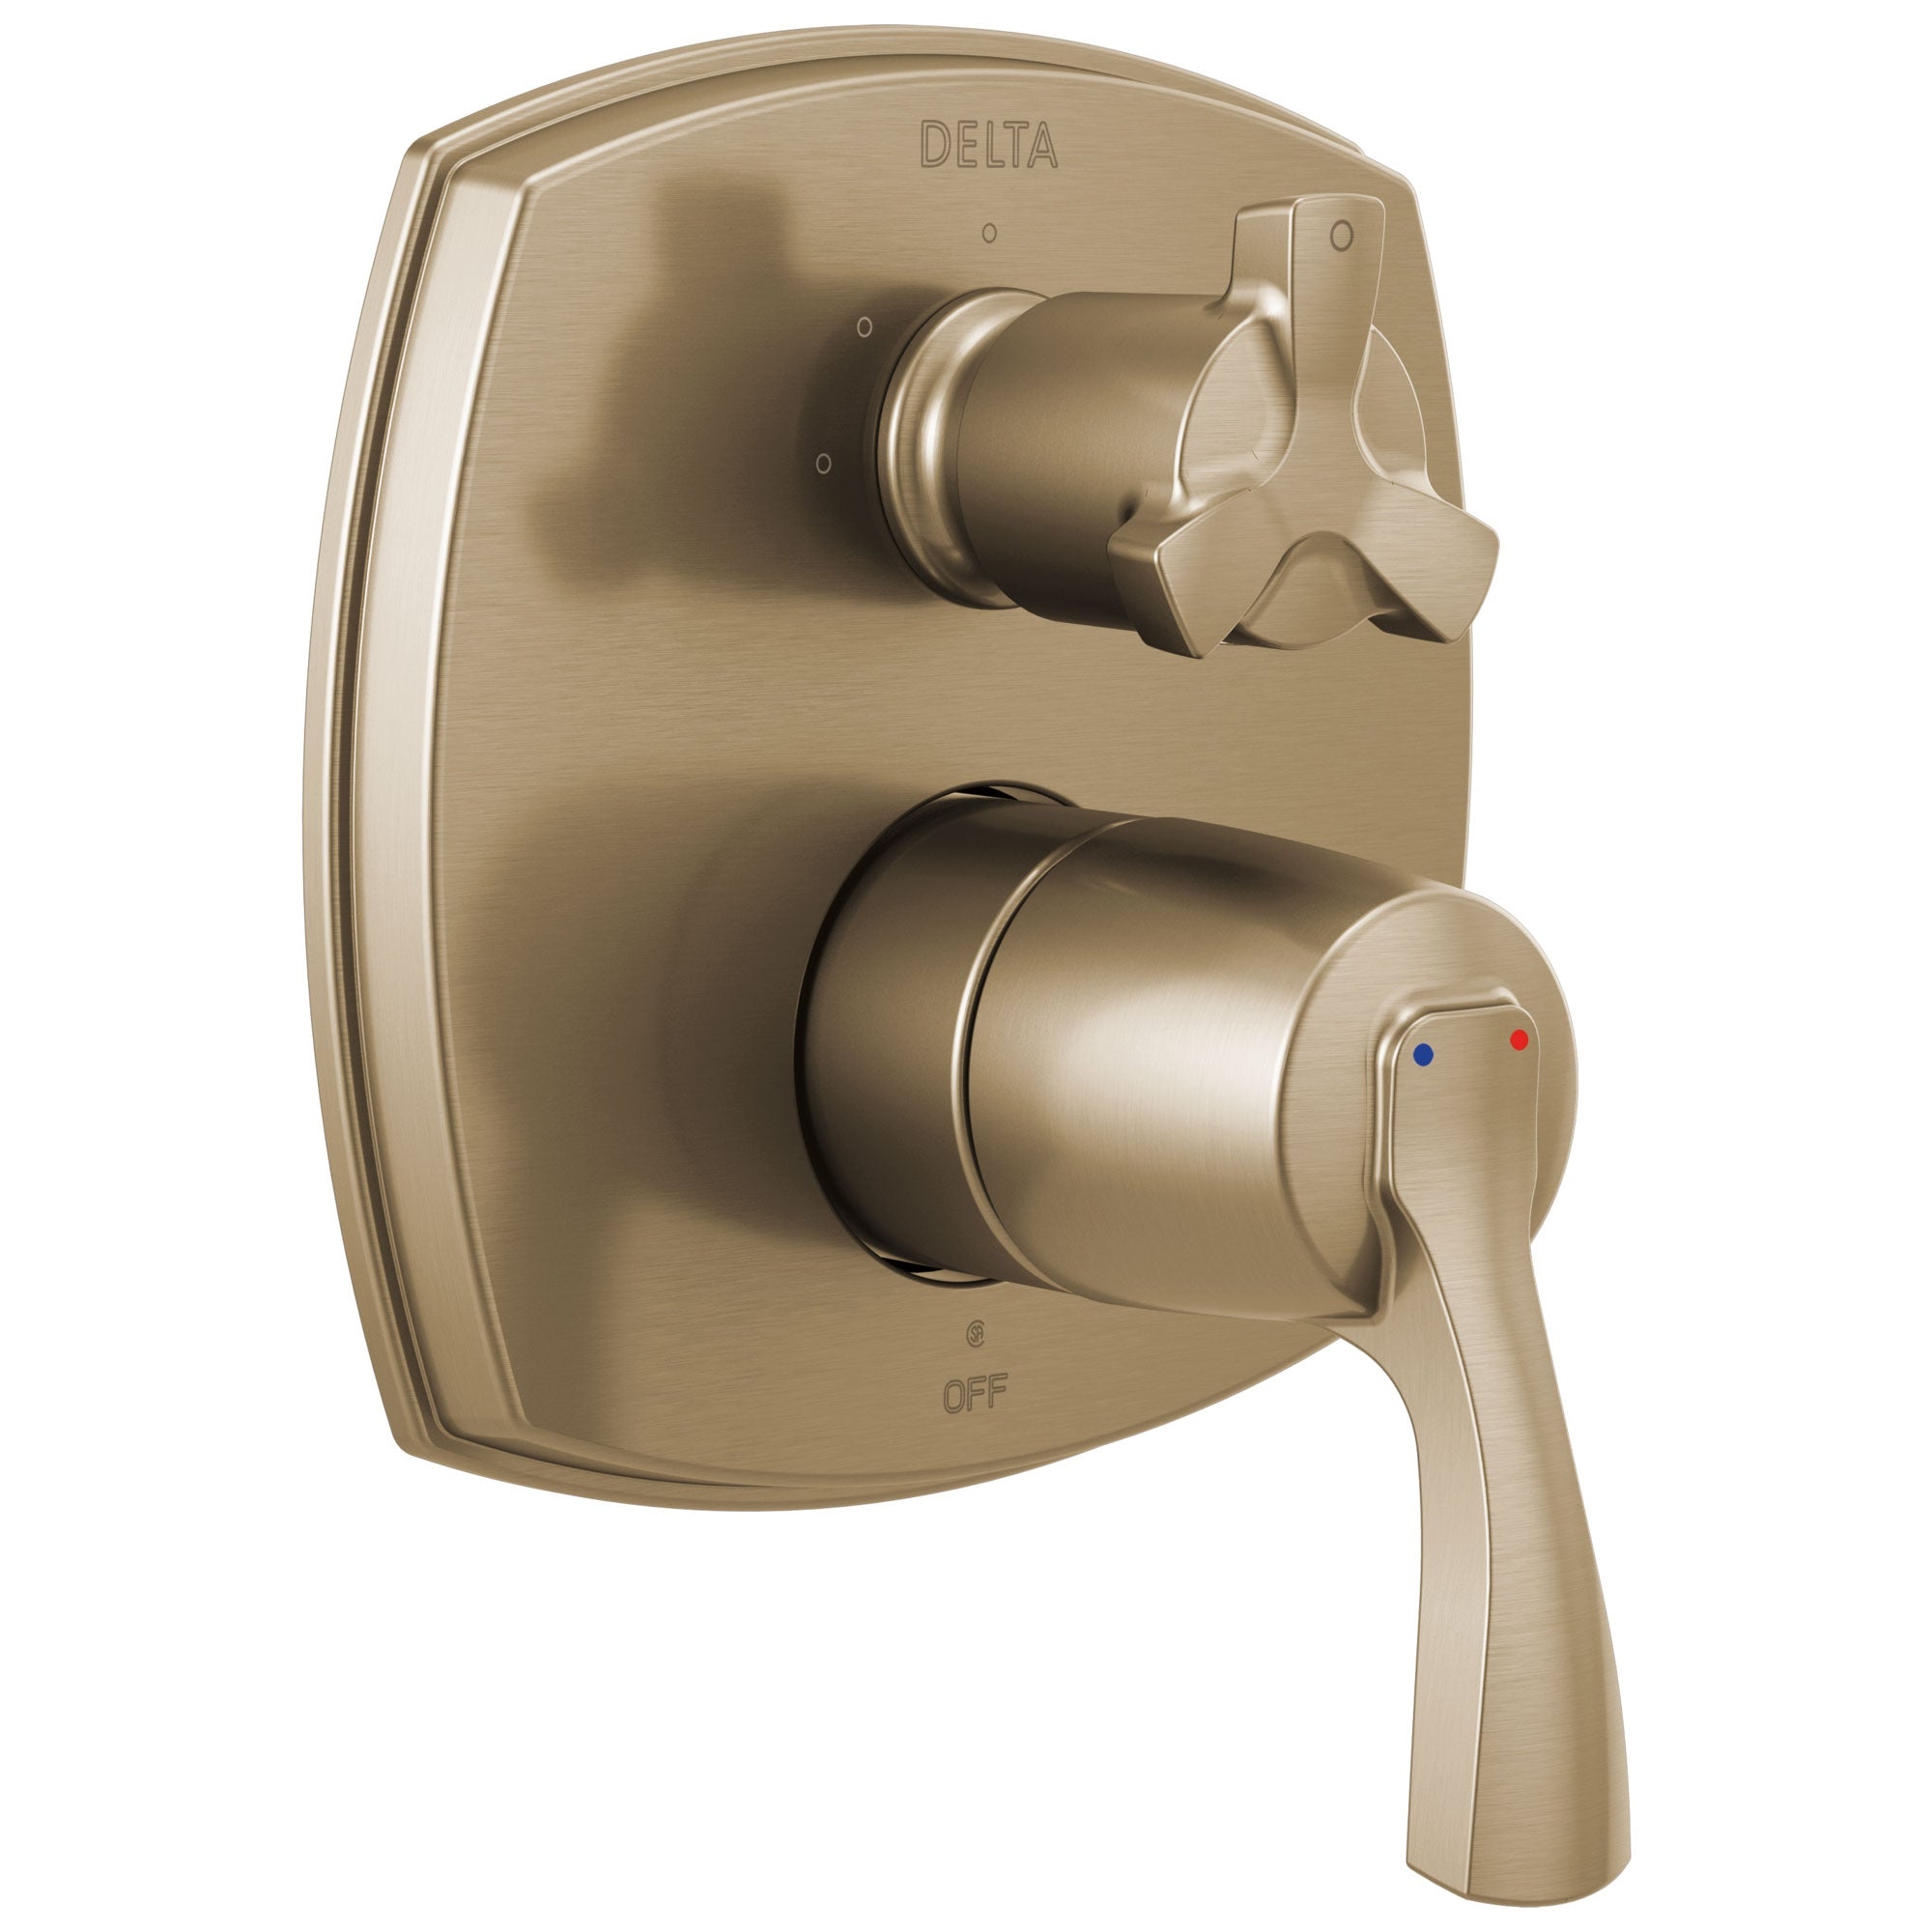 Delta Stryke Champagne Bronze 14 Series Shower System Control with 3 Function Integrated Cross Handle Diverter Includes Valve and Handles D3772V